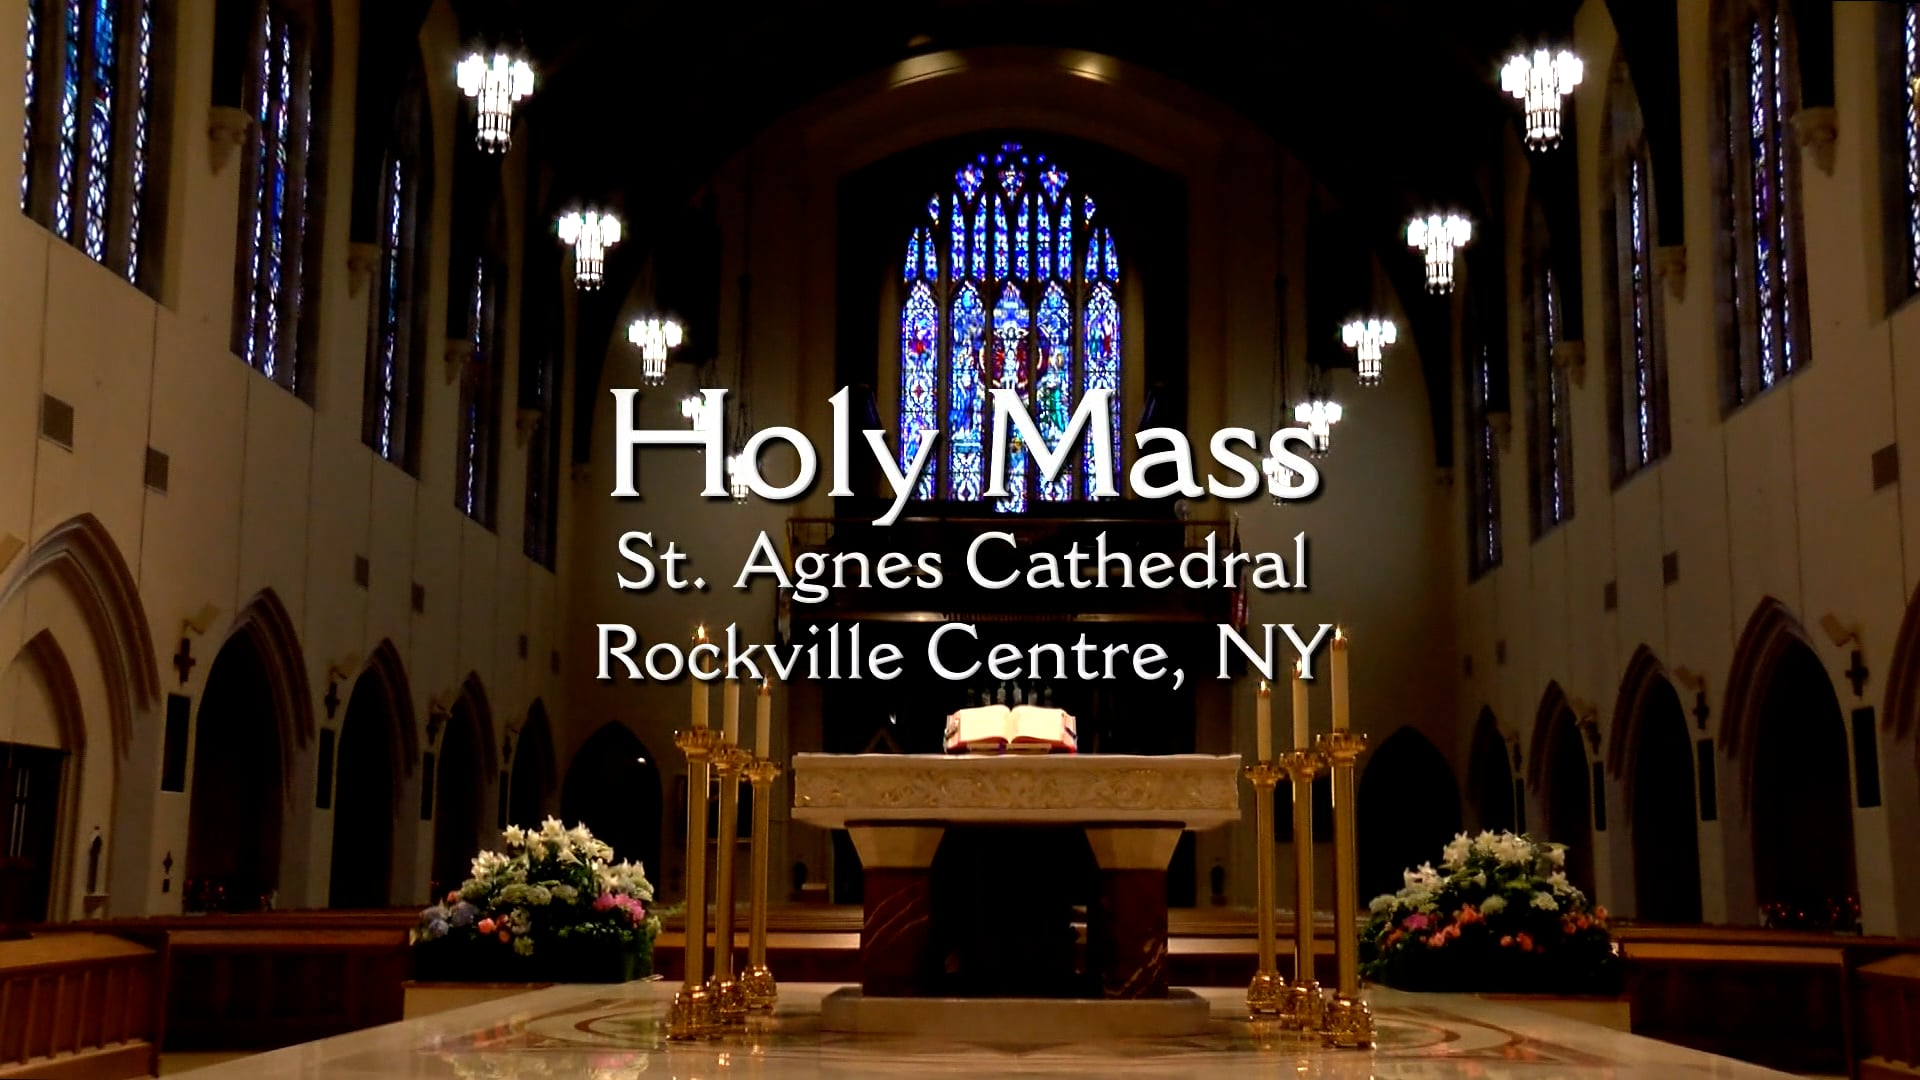 Mass from St. Agnes Cathedral - October 15, 2021